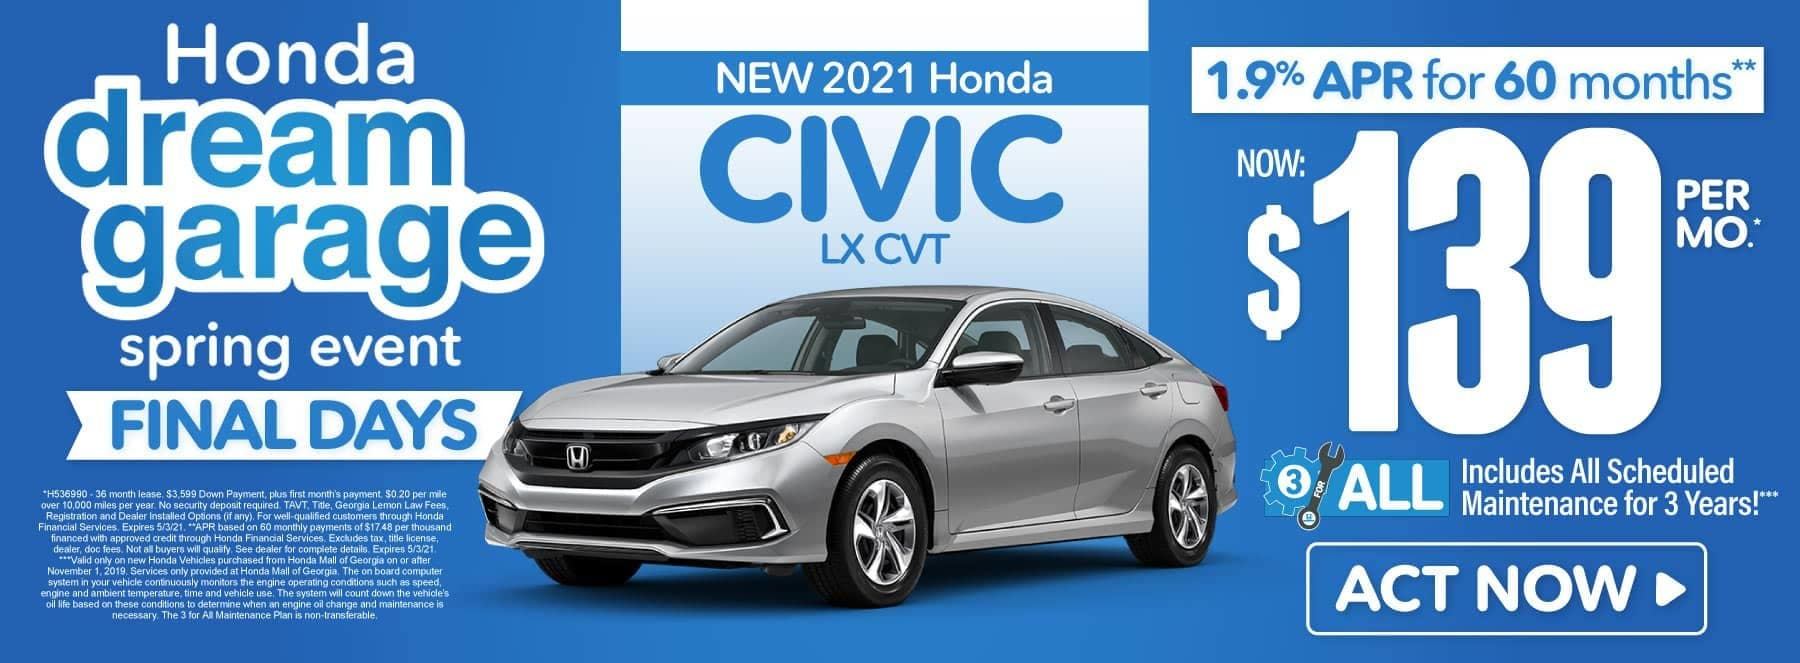 New 2021 Honda Civic | Now $139 per month | Act Now